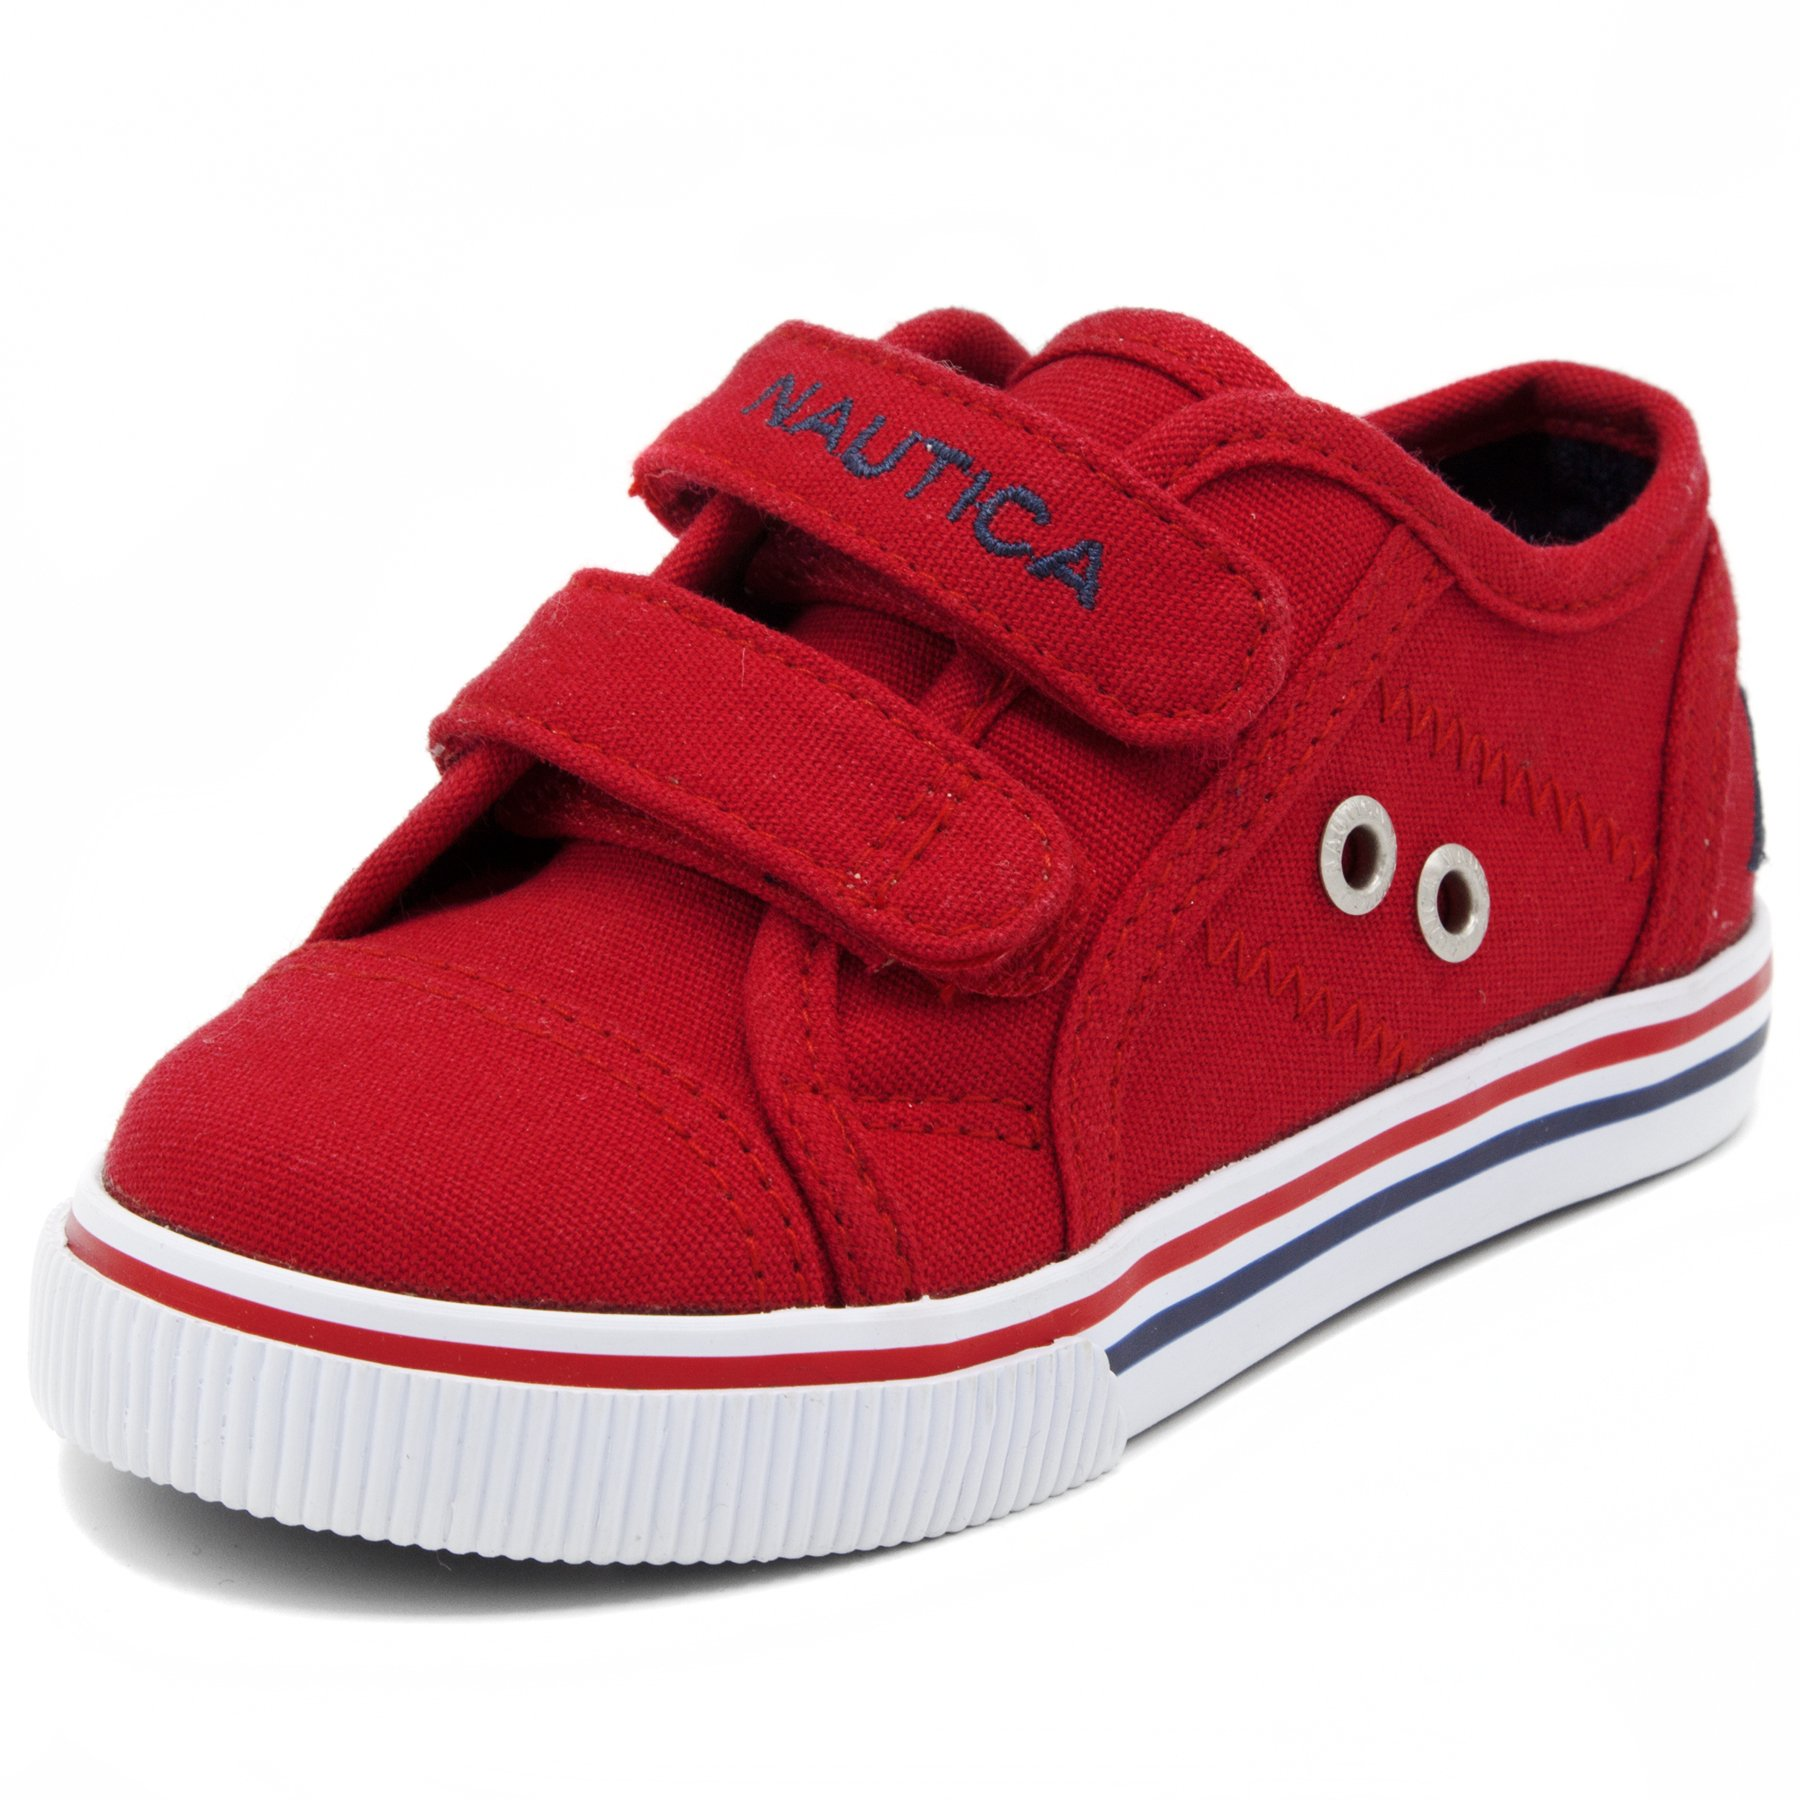 Nautica Kids Colburn Casual Shoes, Velcro Fashion Sneaker Boys Girls-Red-5